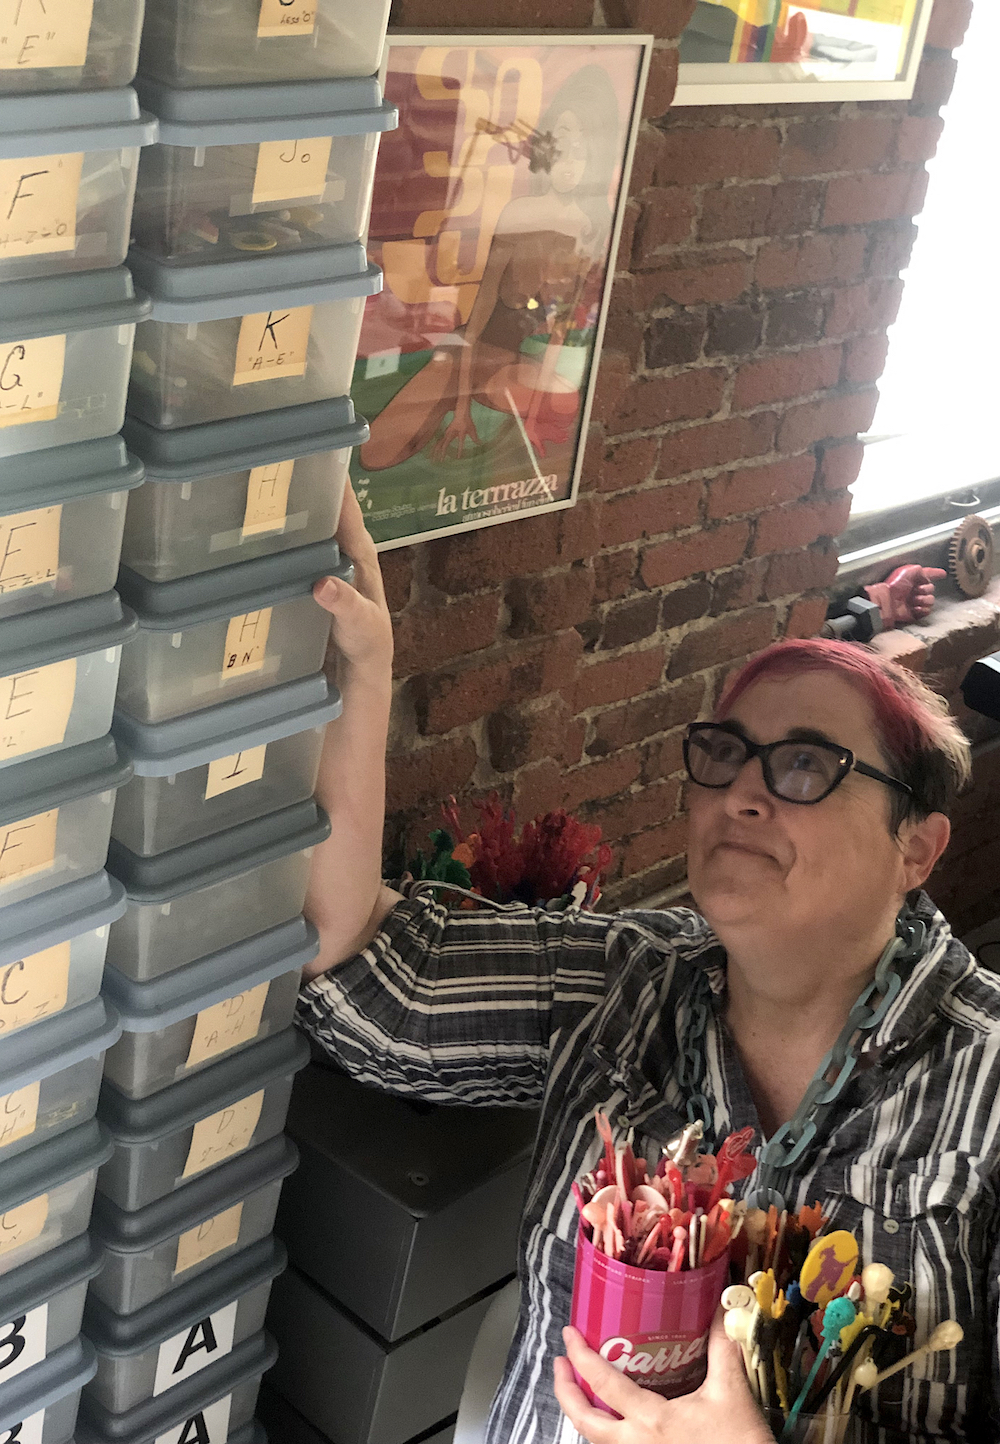 Ashlund with just a few of the 100 or so Tupperware boxes she uses to store her collection of 50,000 swizzle sticks.